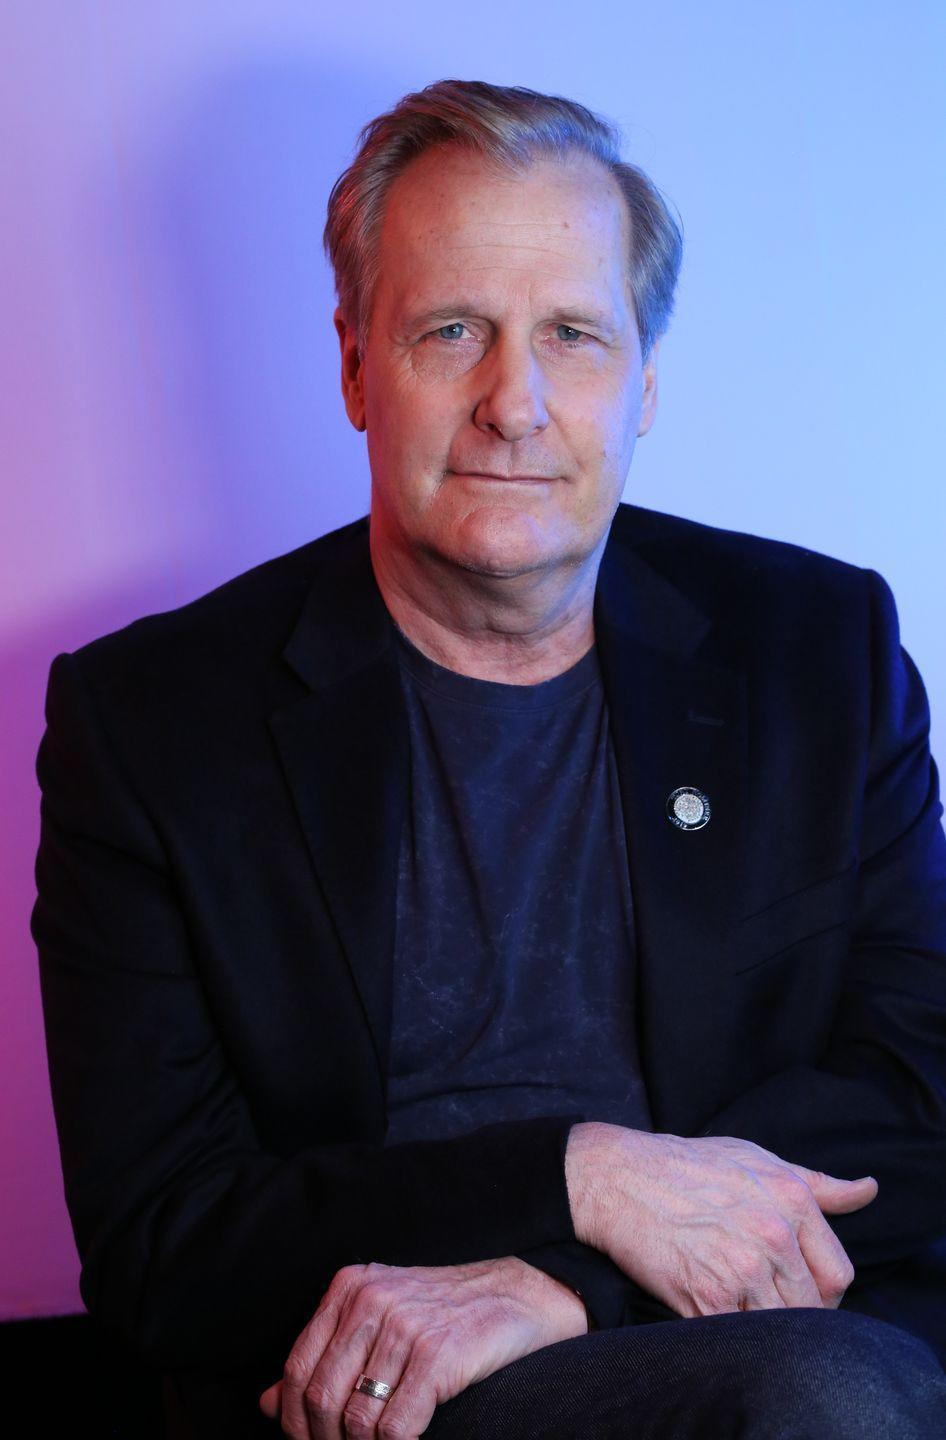 <p>Jeff Daniels is practically a living legend. The 65-year-old actor has two Primetime Emmy Awards under his belt, one for his work on HBO's <em>The Newsroom</em> and another for Netflix's 2017 miniseries <em>Godless</em>, as well as a slew of other top tier awards nominations for his body of work. Unsurprisingly, his performance in <em>The Comey Rule </em>is being praised as one of the miniseries' strengths. </p>